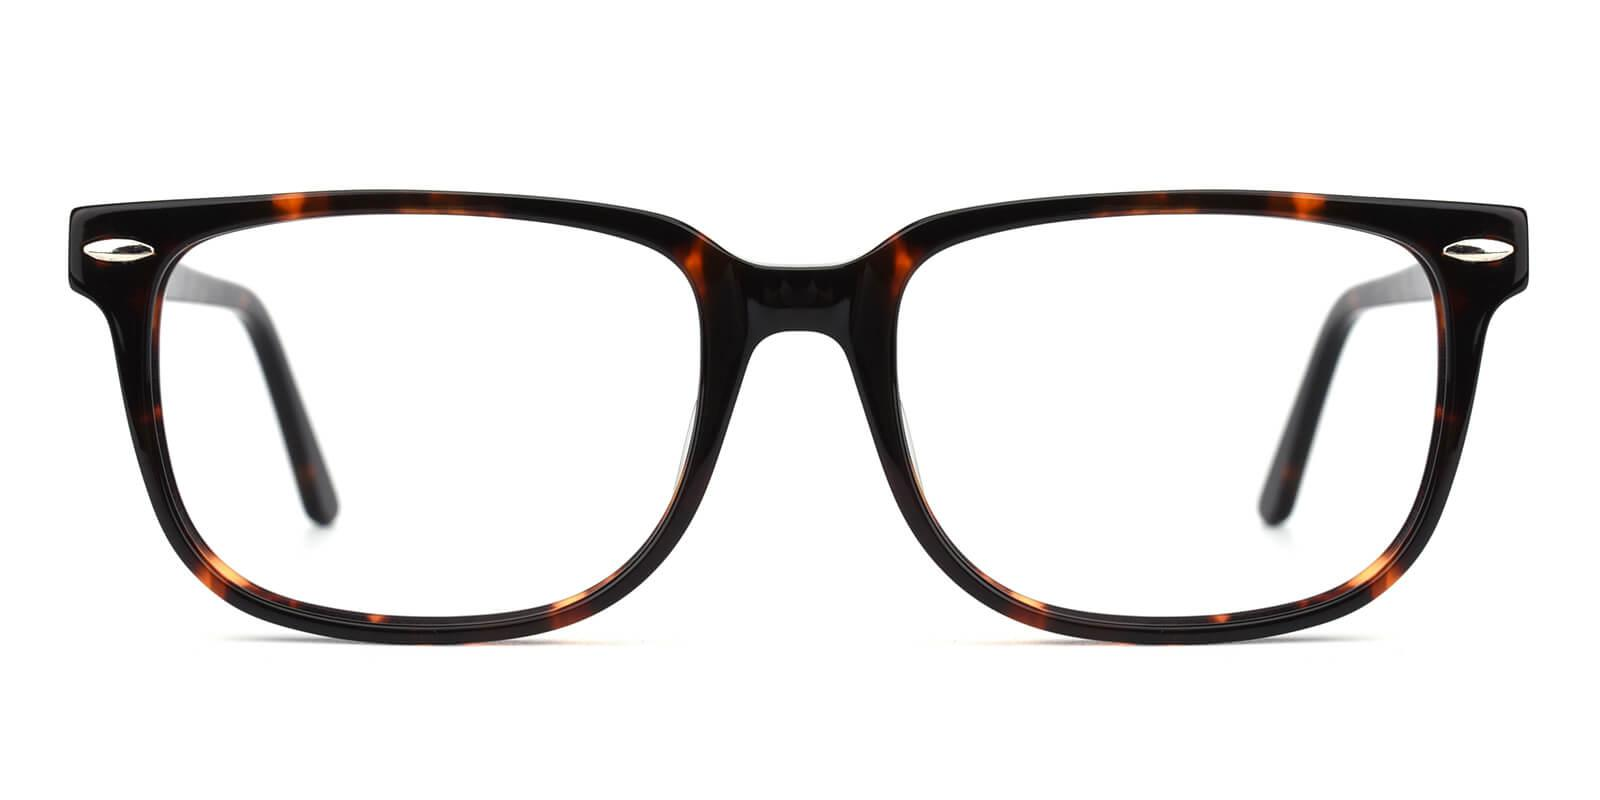 Tempiry-Pattern-Rectangle-Acetate-Eyeglasses-additional2